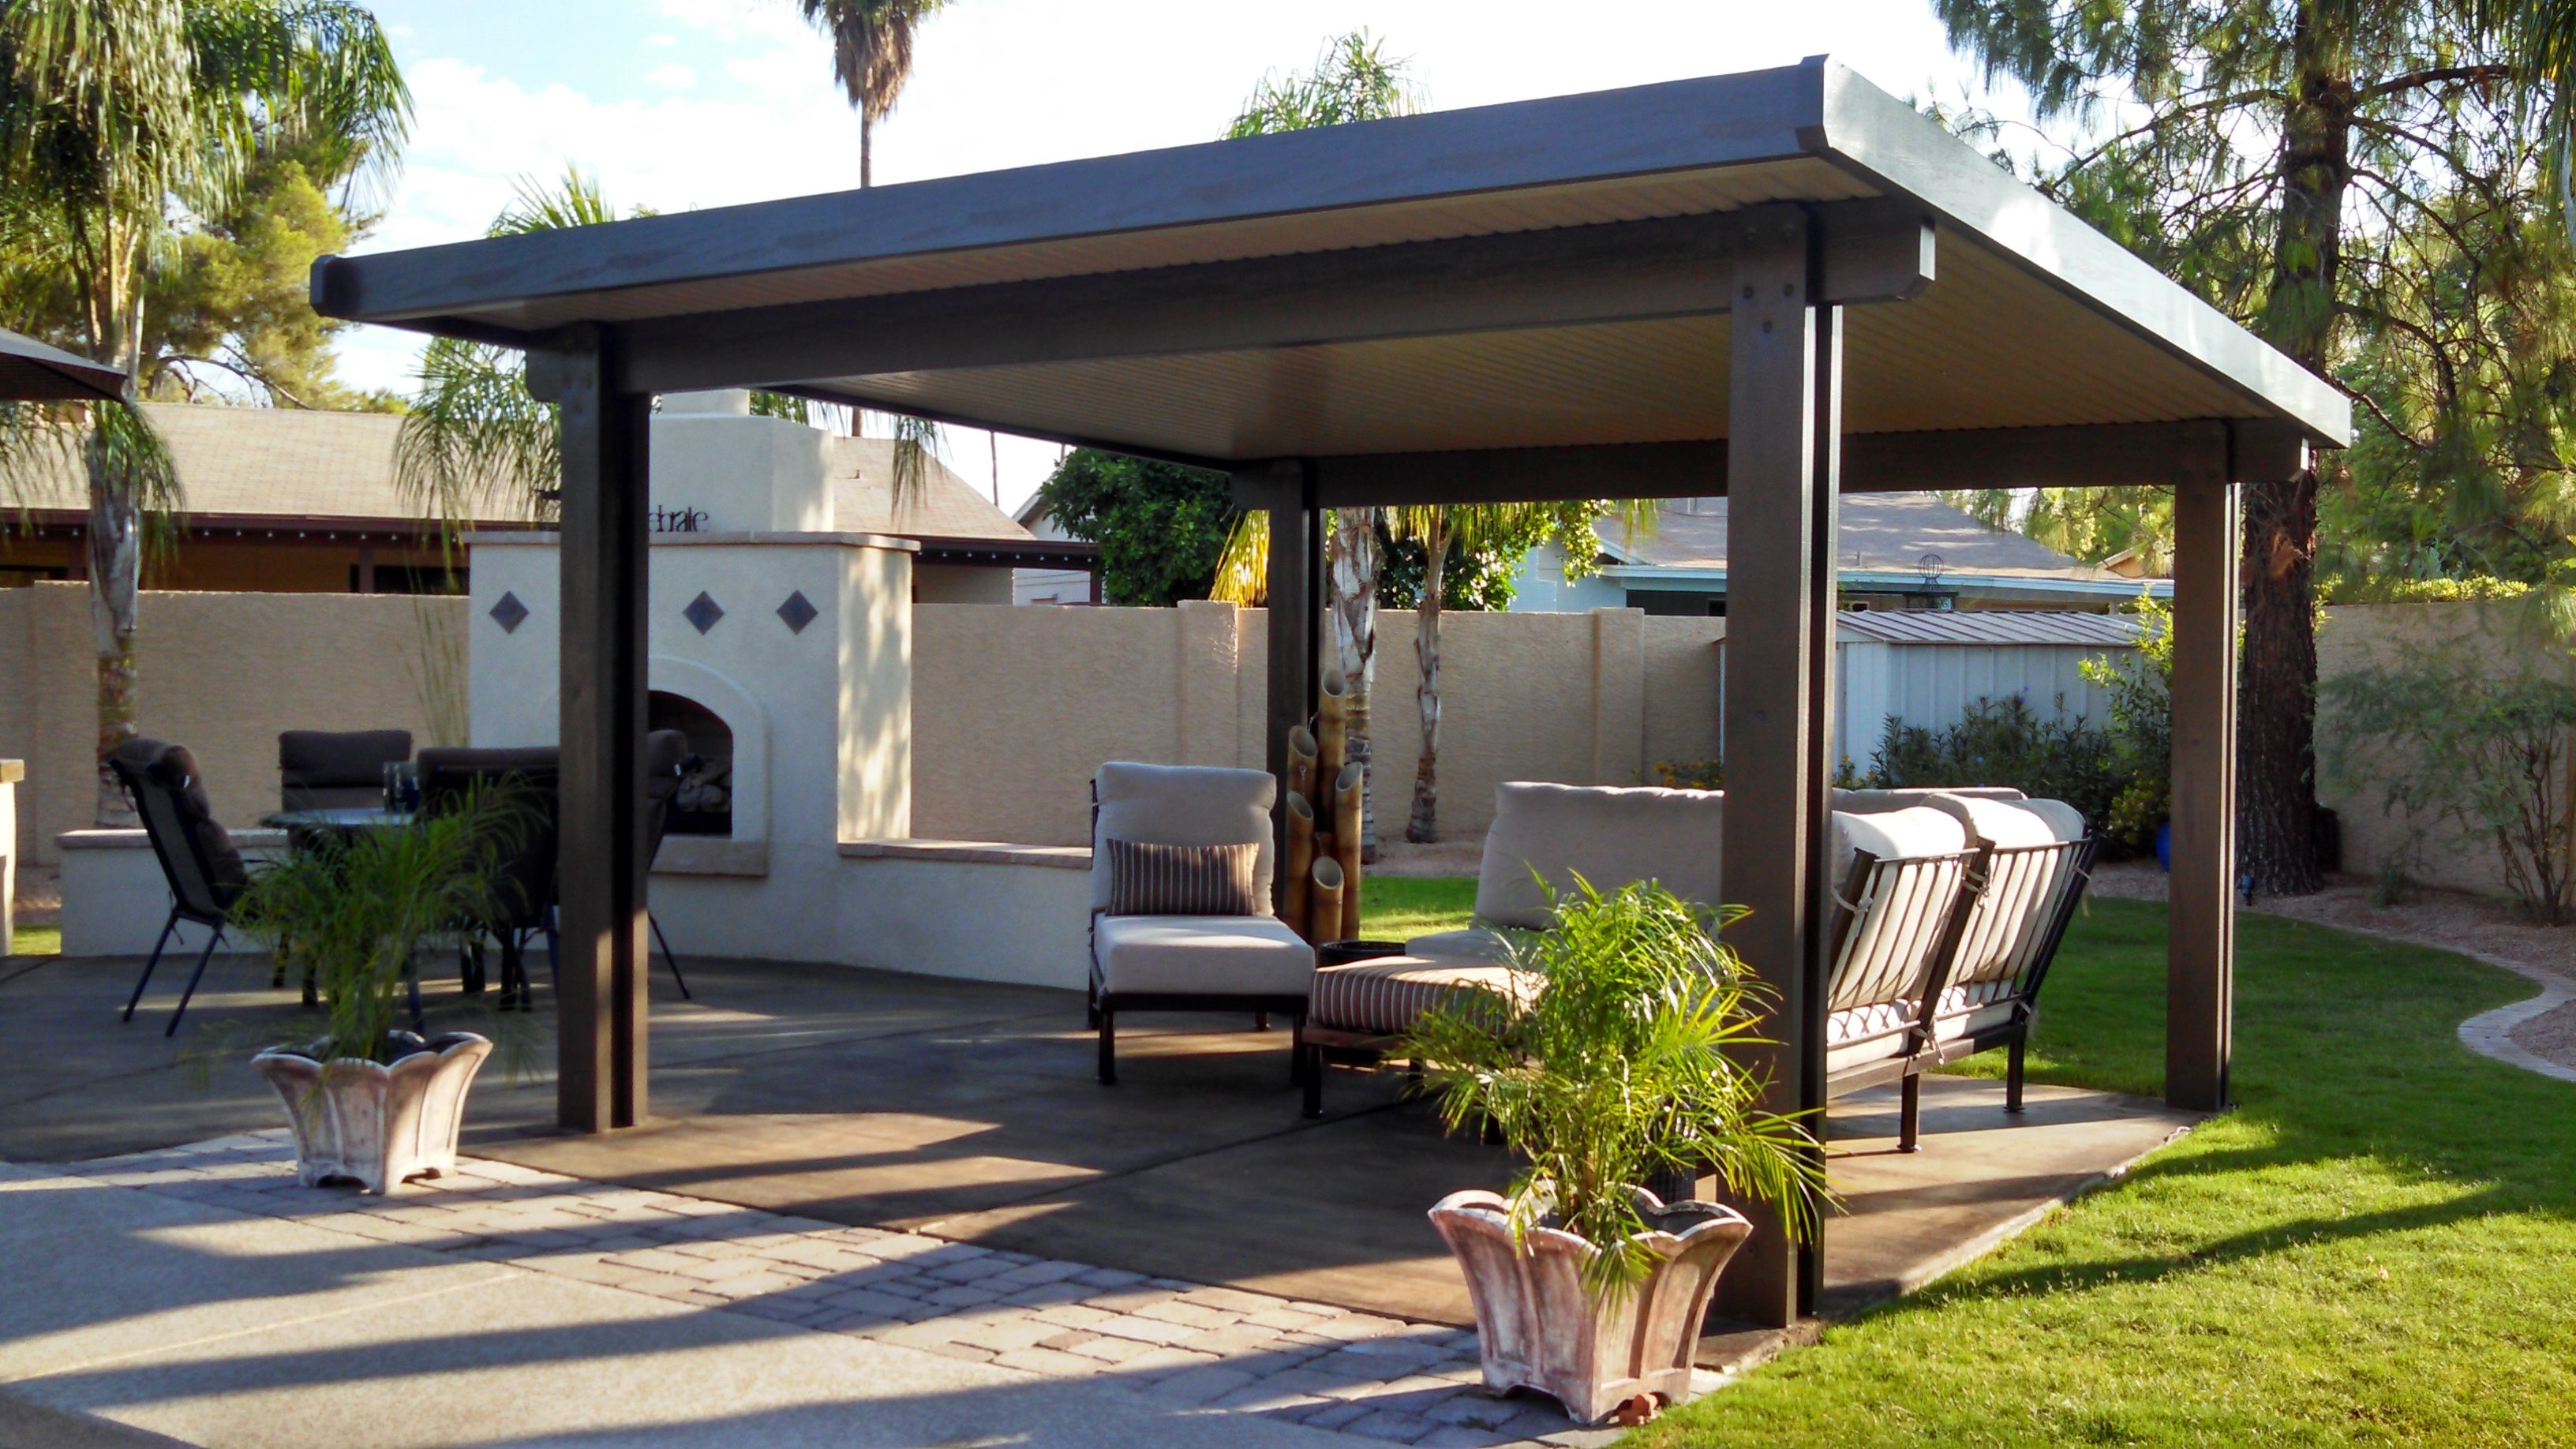 Custom Alumawood Solid Patio Cover Pictures From Phoenix, AZ Area. Royal  Covers Of Arizona Is An Alumawood Installer From Mesa, AZ.